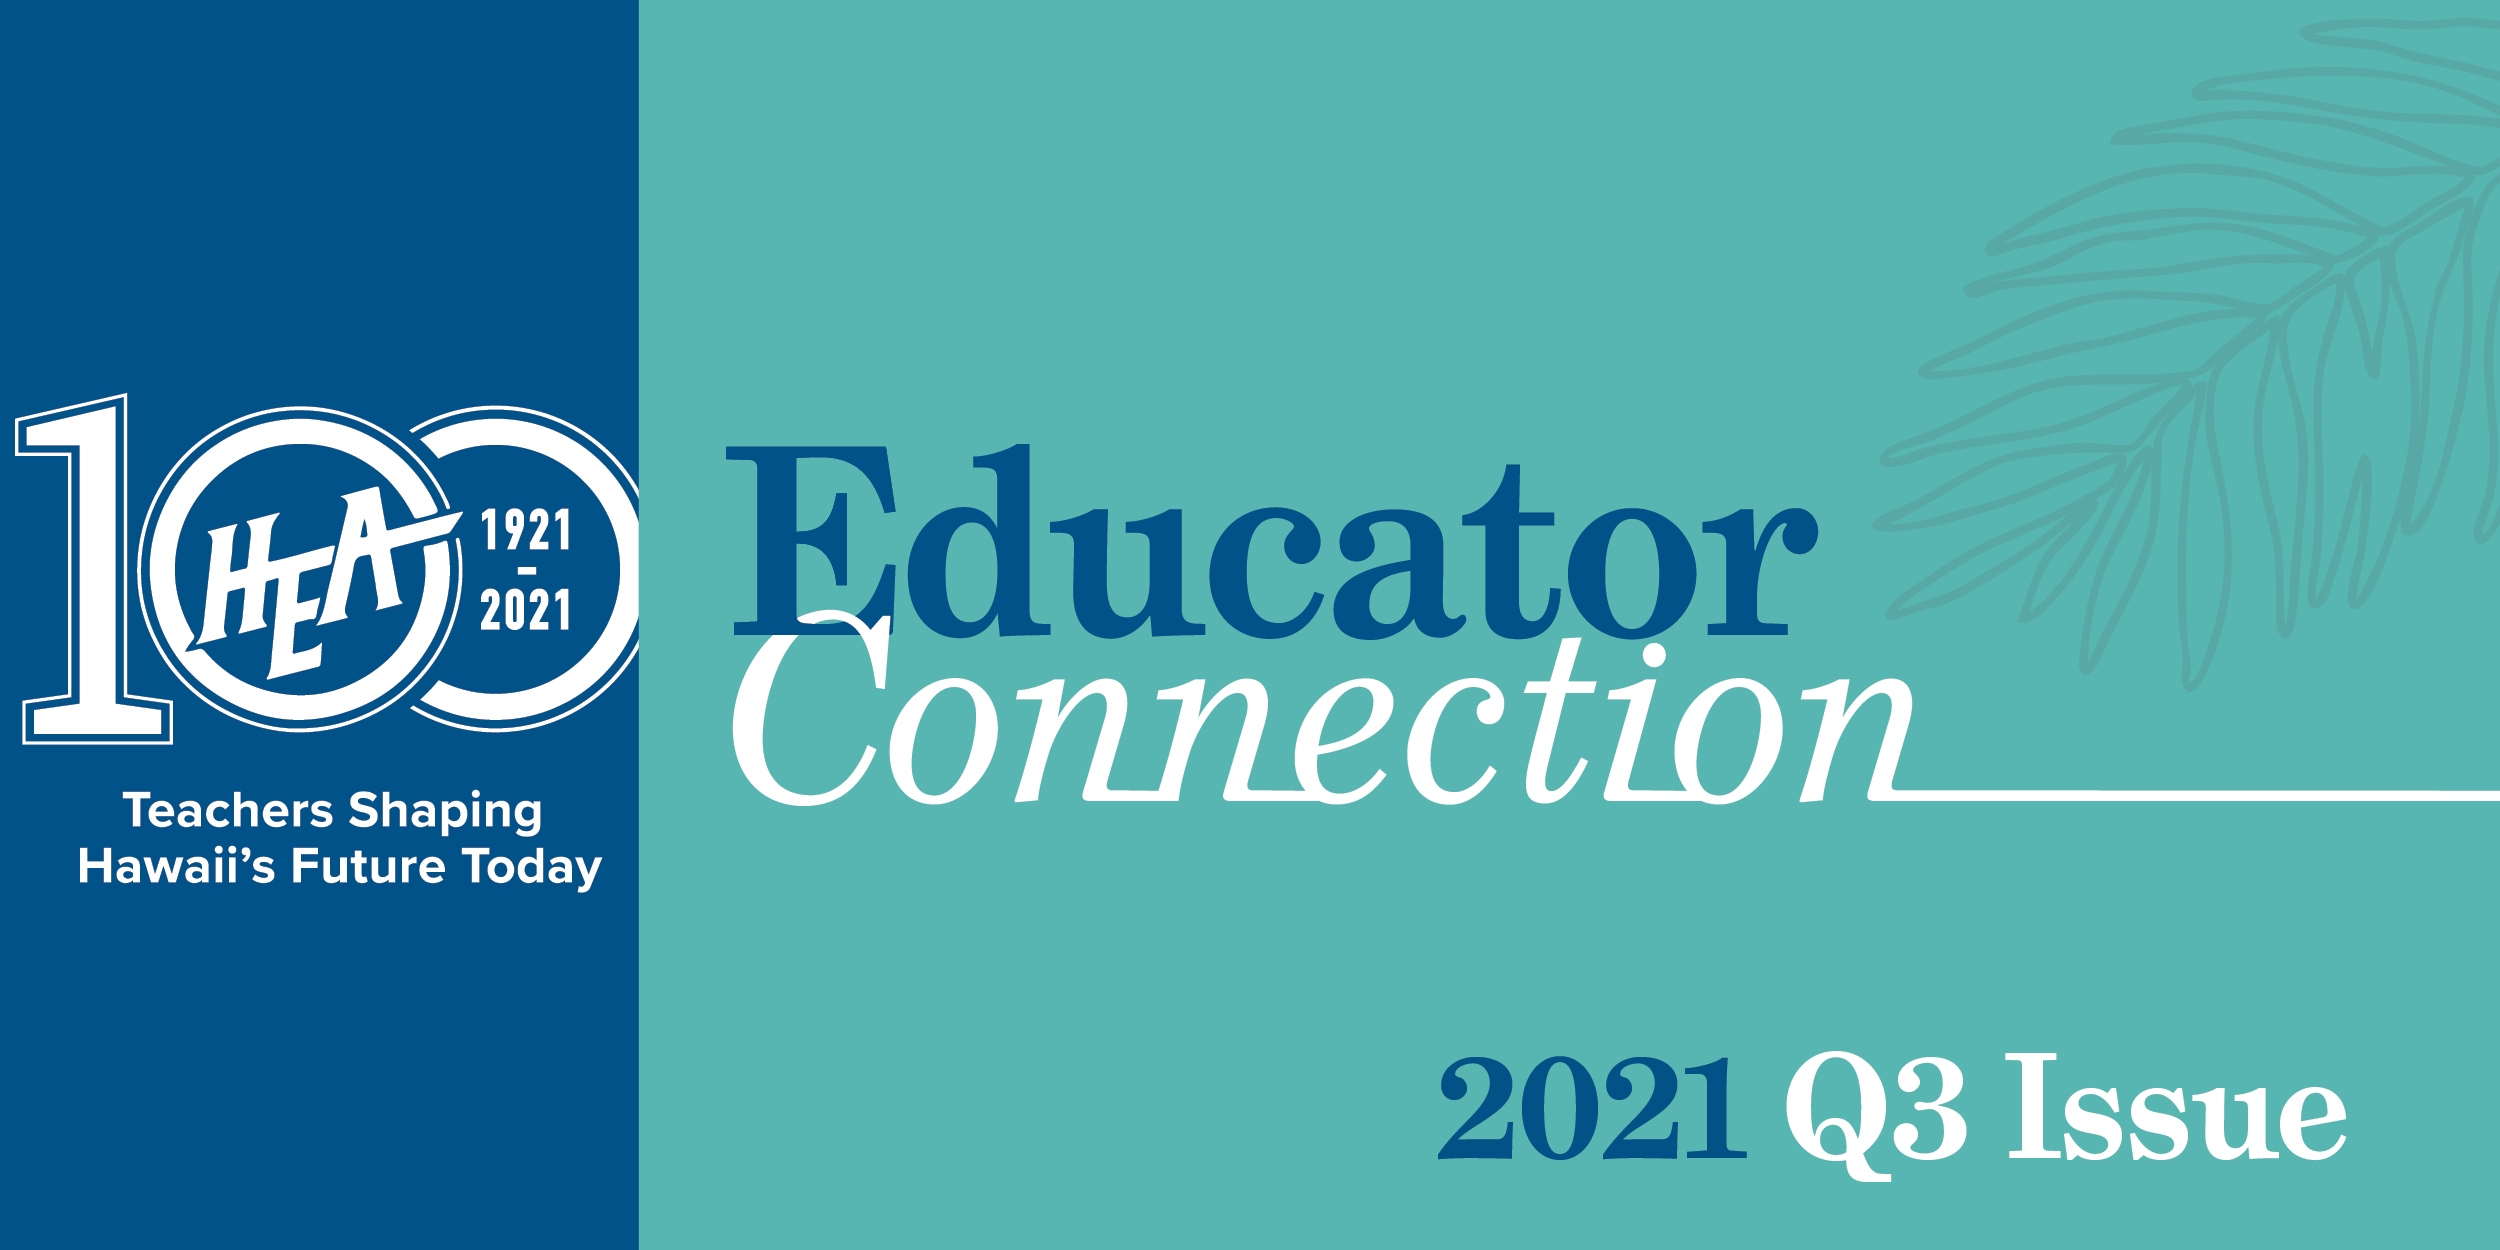 Educator Connection Q3 2021 Newsletter Now Available